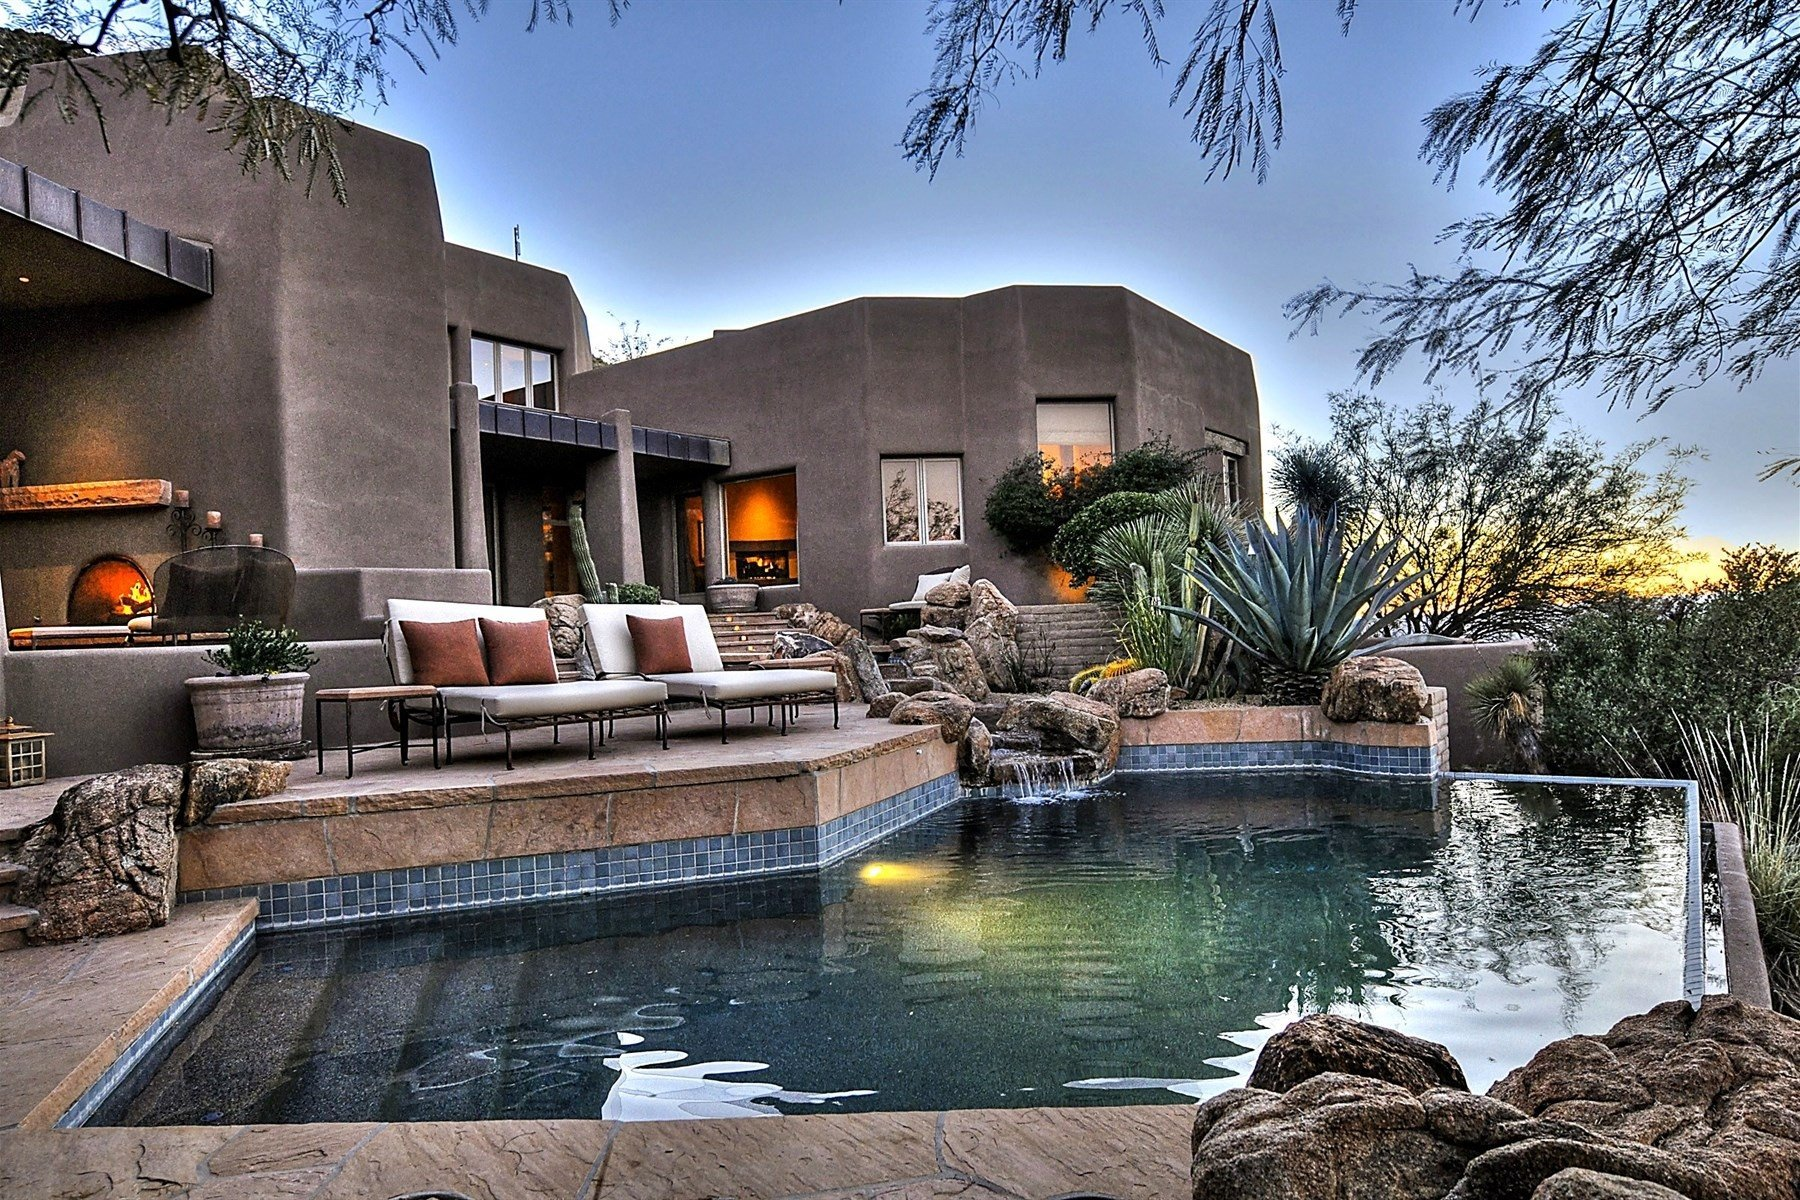 Rockwood Estates Homes For Sale Chandler Az Rockwood